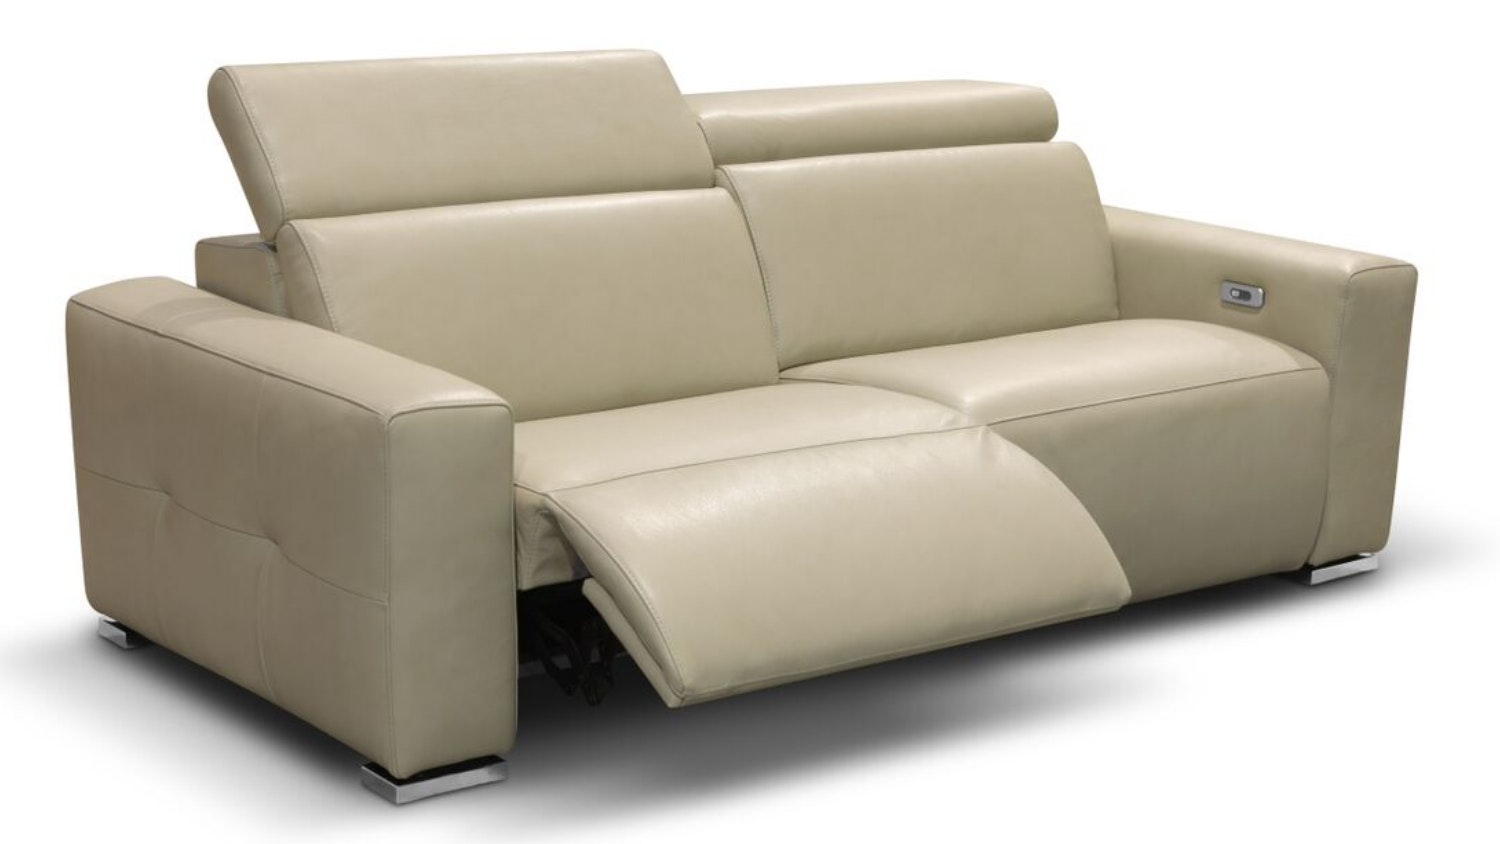 Saporini Arena Italian Full Leather 2 Seater Sofa Harvey  : SaporiniarenaItalianfullleathersofa from www.harveynorman.com.sg size 1500 x 844 jpeg 42kB